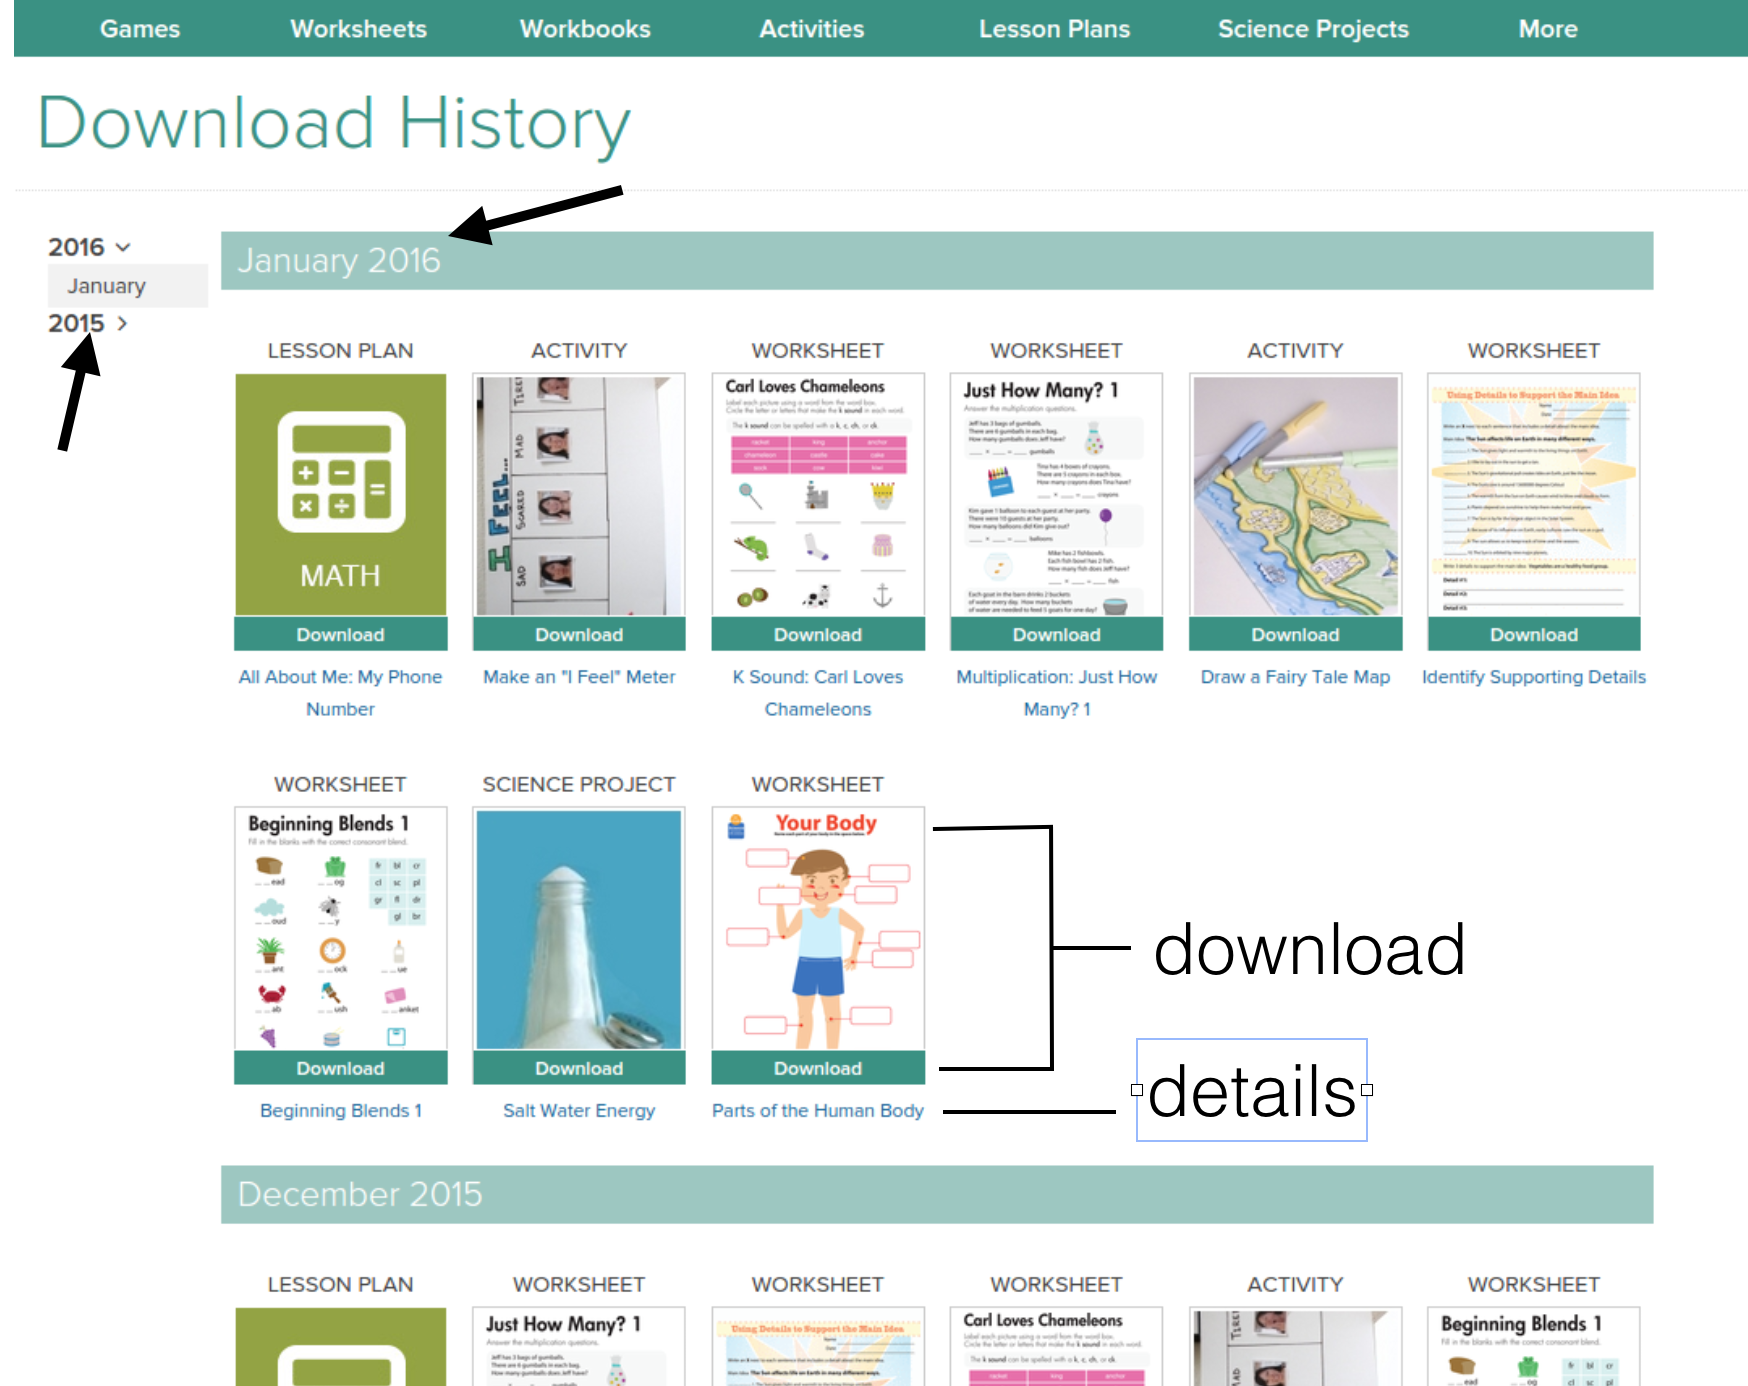 Navigating Download History